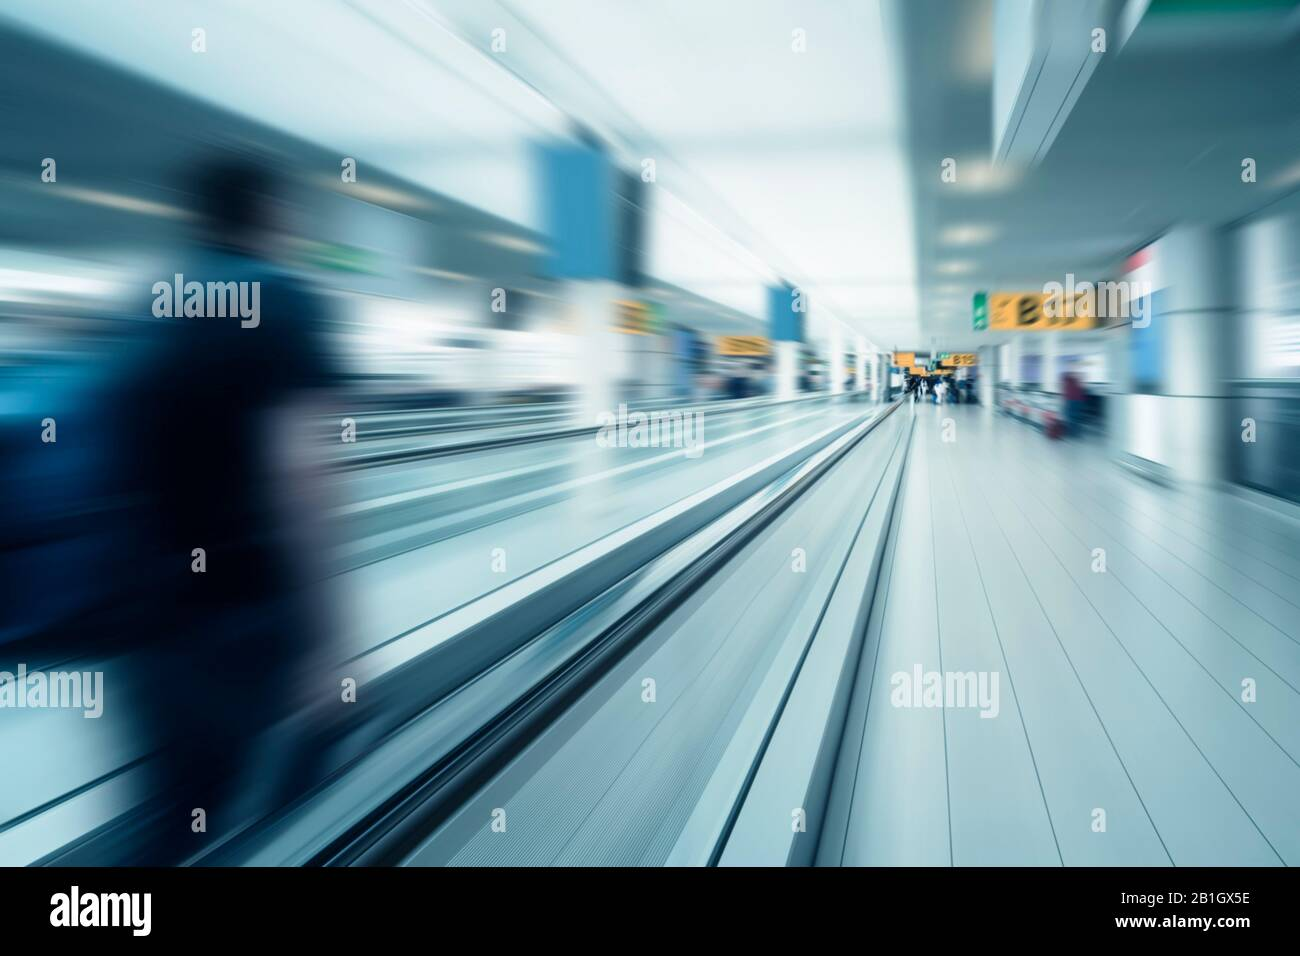 Blurry picture of an airport gate - globalisation Stock Photo